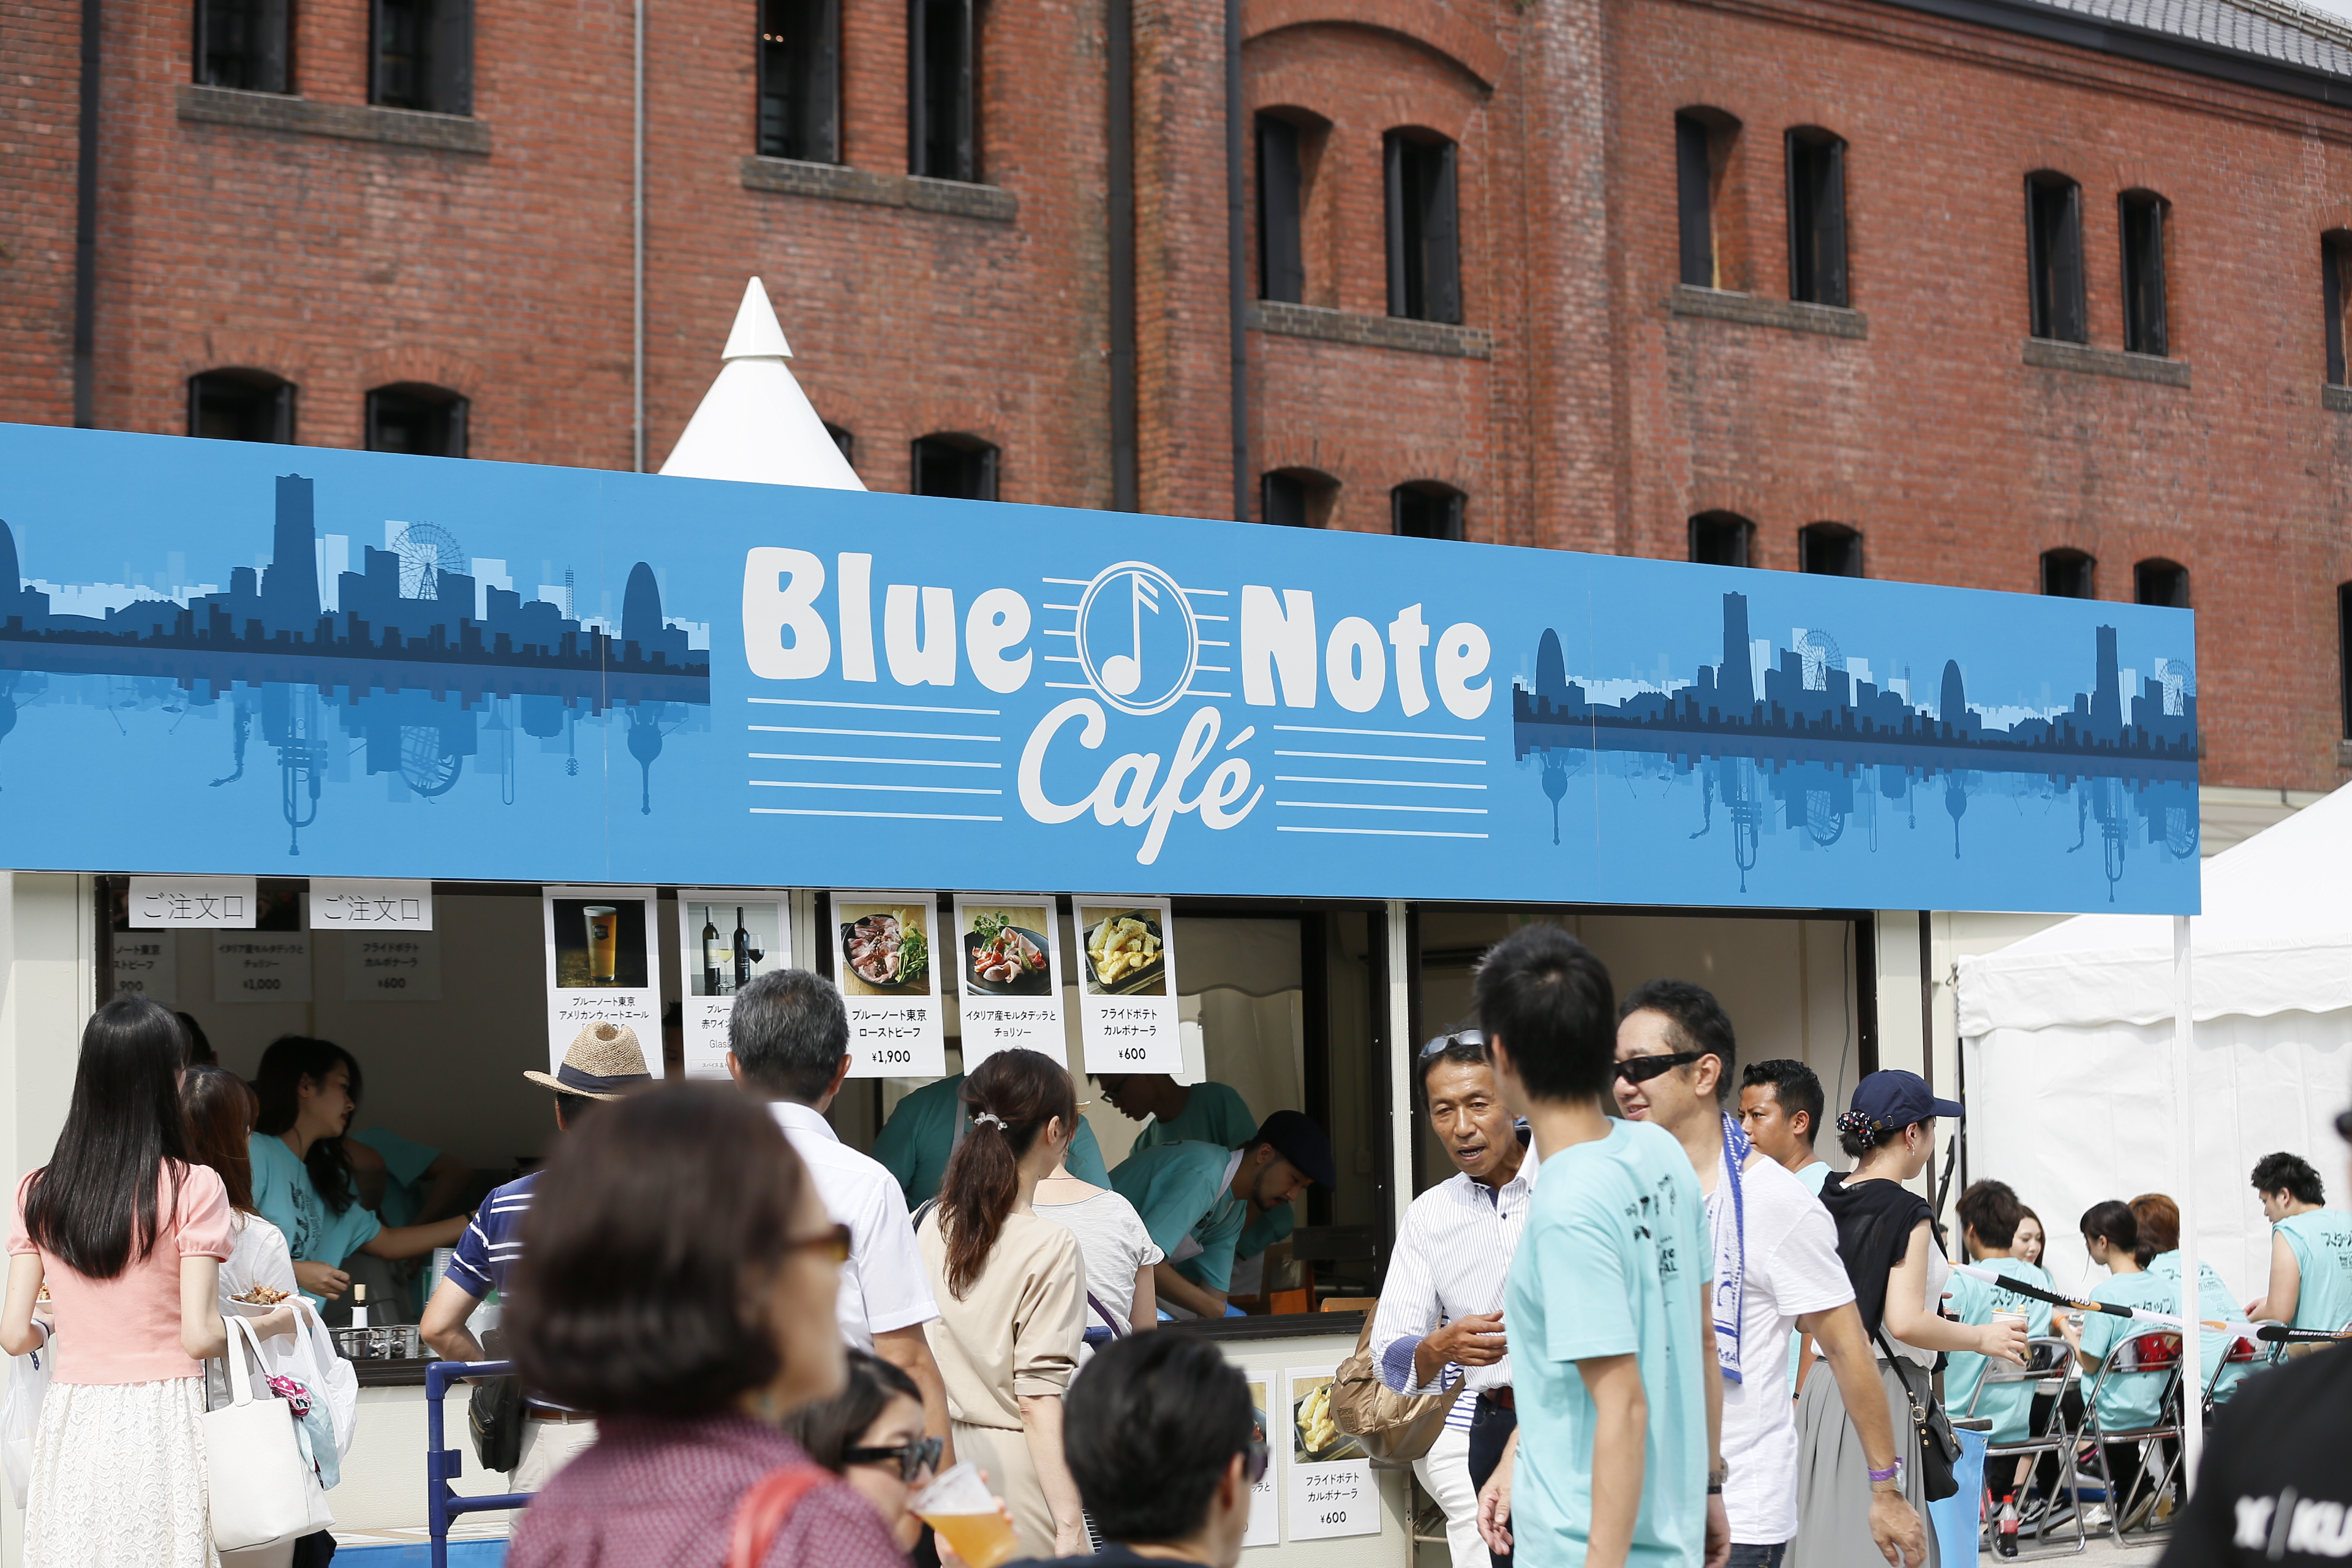 BNJF限定カフェ『Blue Note café』&人気店のキッチンカーが登場!